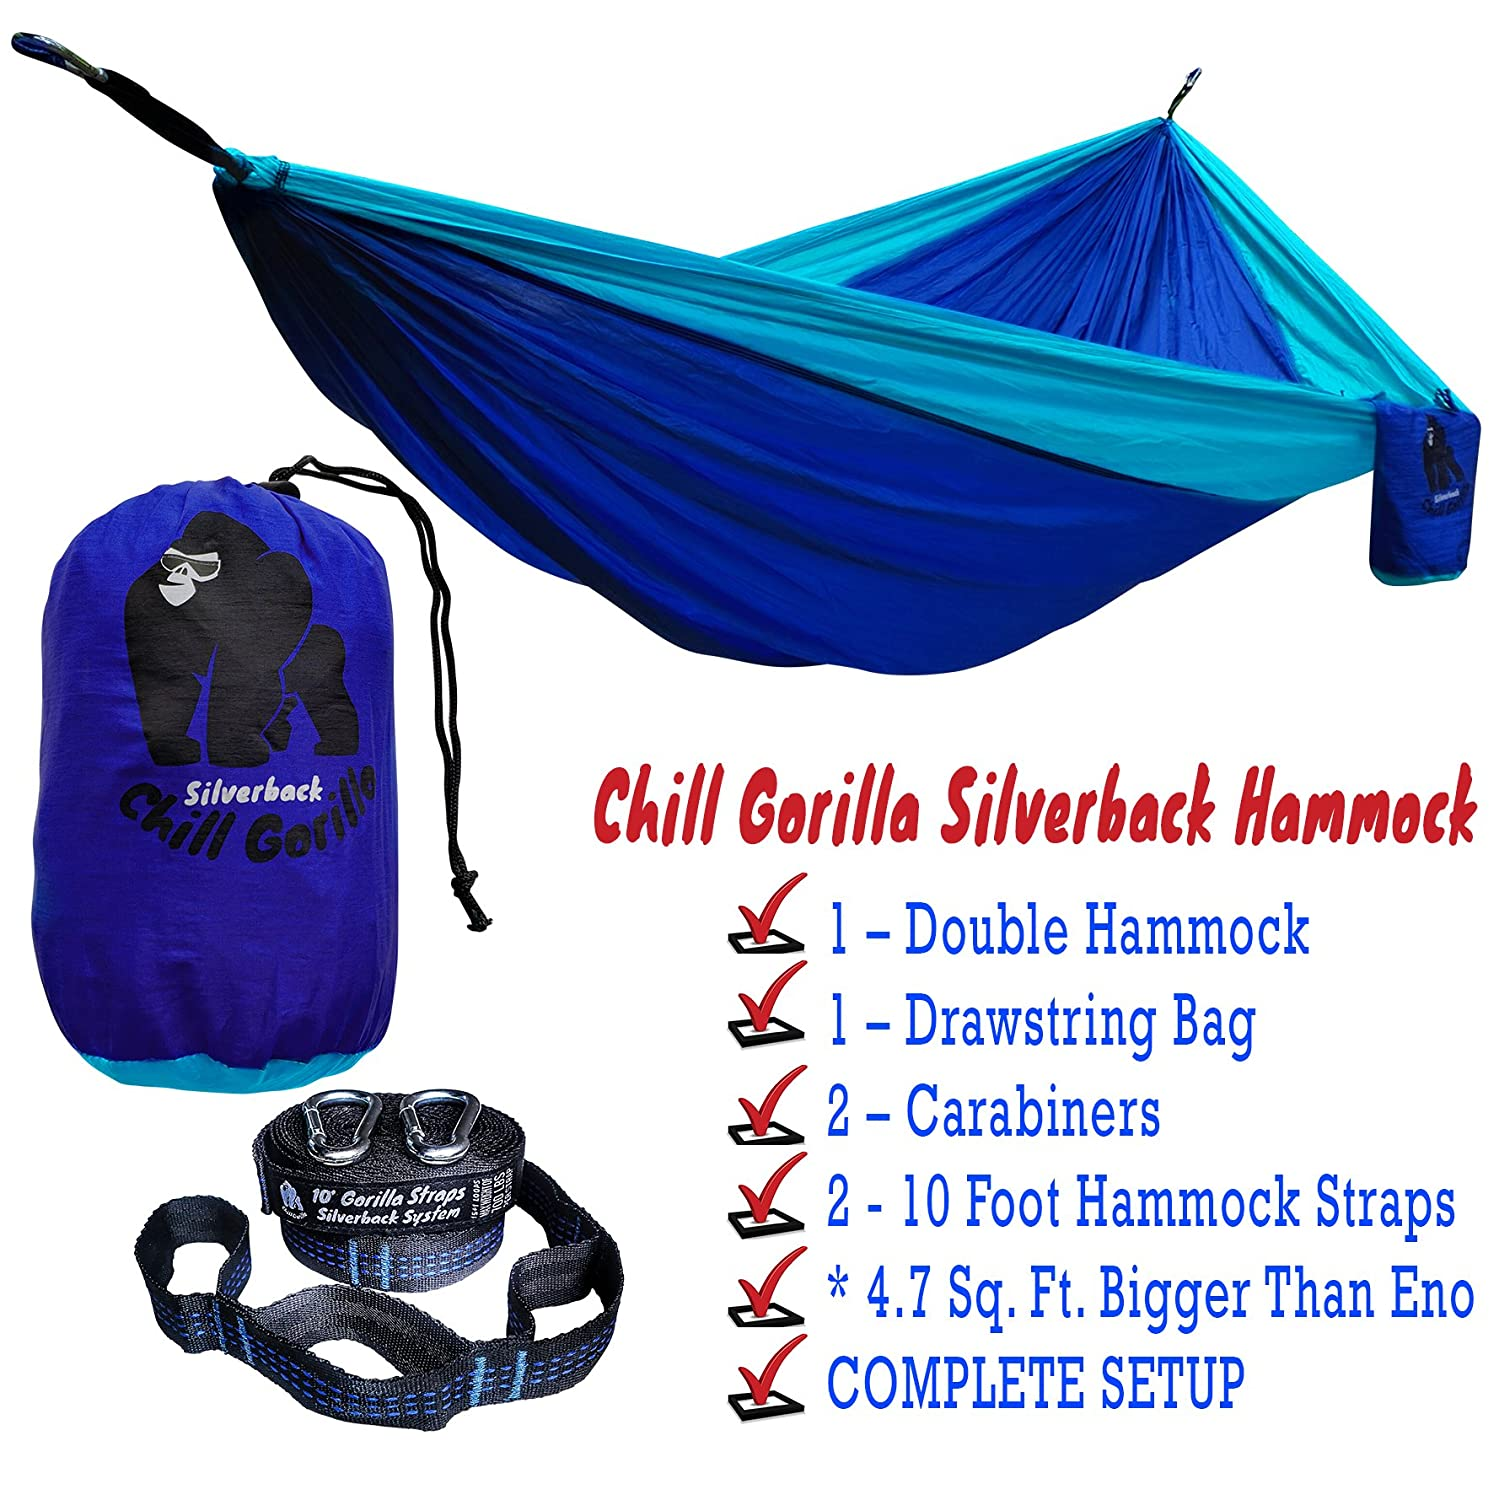 amazon    chill gorilla double hammock with tree straps  perfect for backpacking camping travel beach yard  portable parachute hammock  easy to setup  amazon    chill gorilla double hammock with tree straps  perfect      rh   amazon